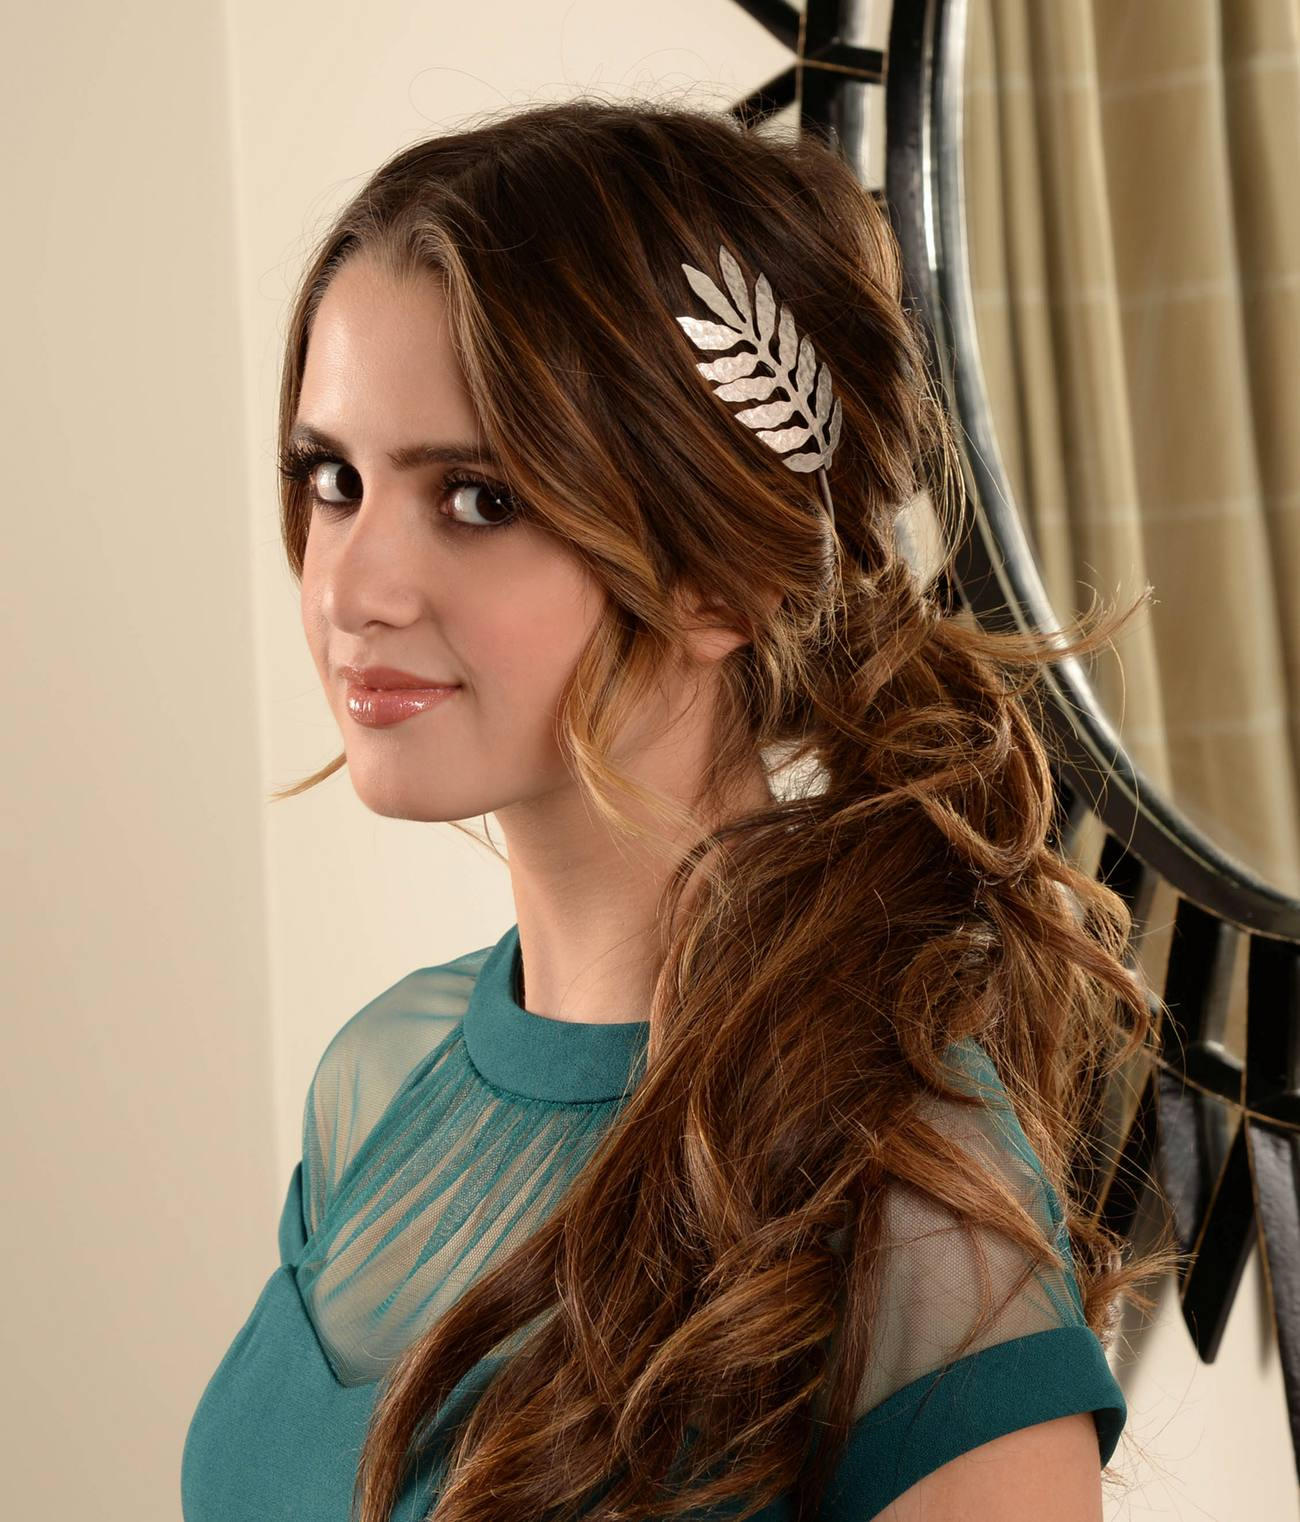 Laura Marano Promotional Photoshoots For Upcoming Music Project-1